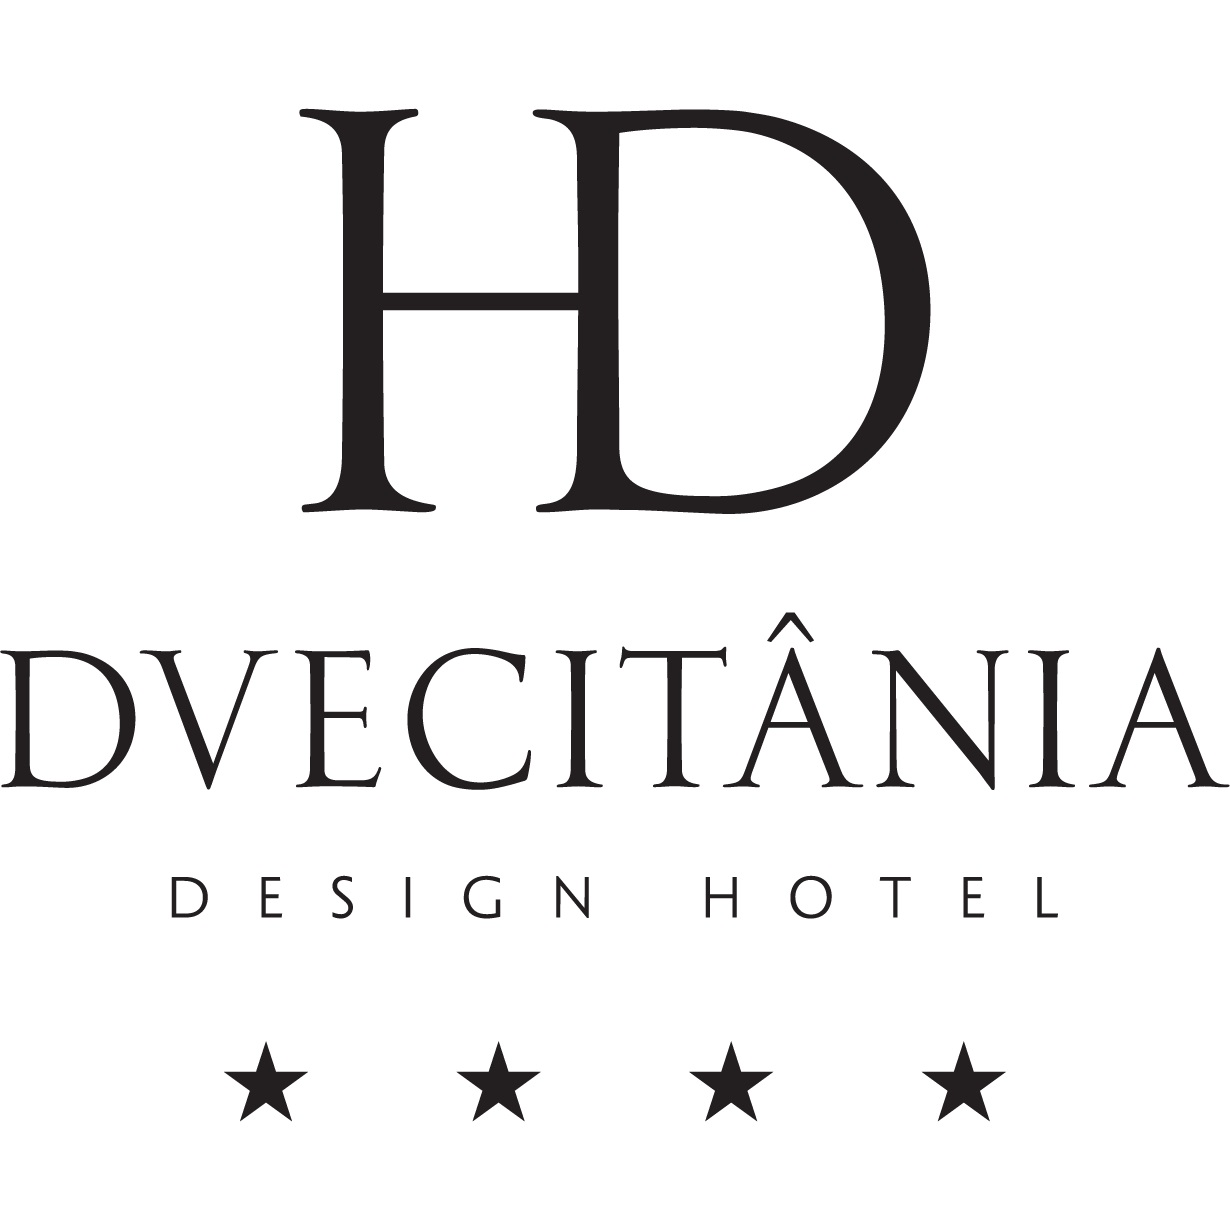 Meetings events at hd duecit nia design hotel penela for Design hotel group